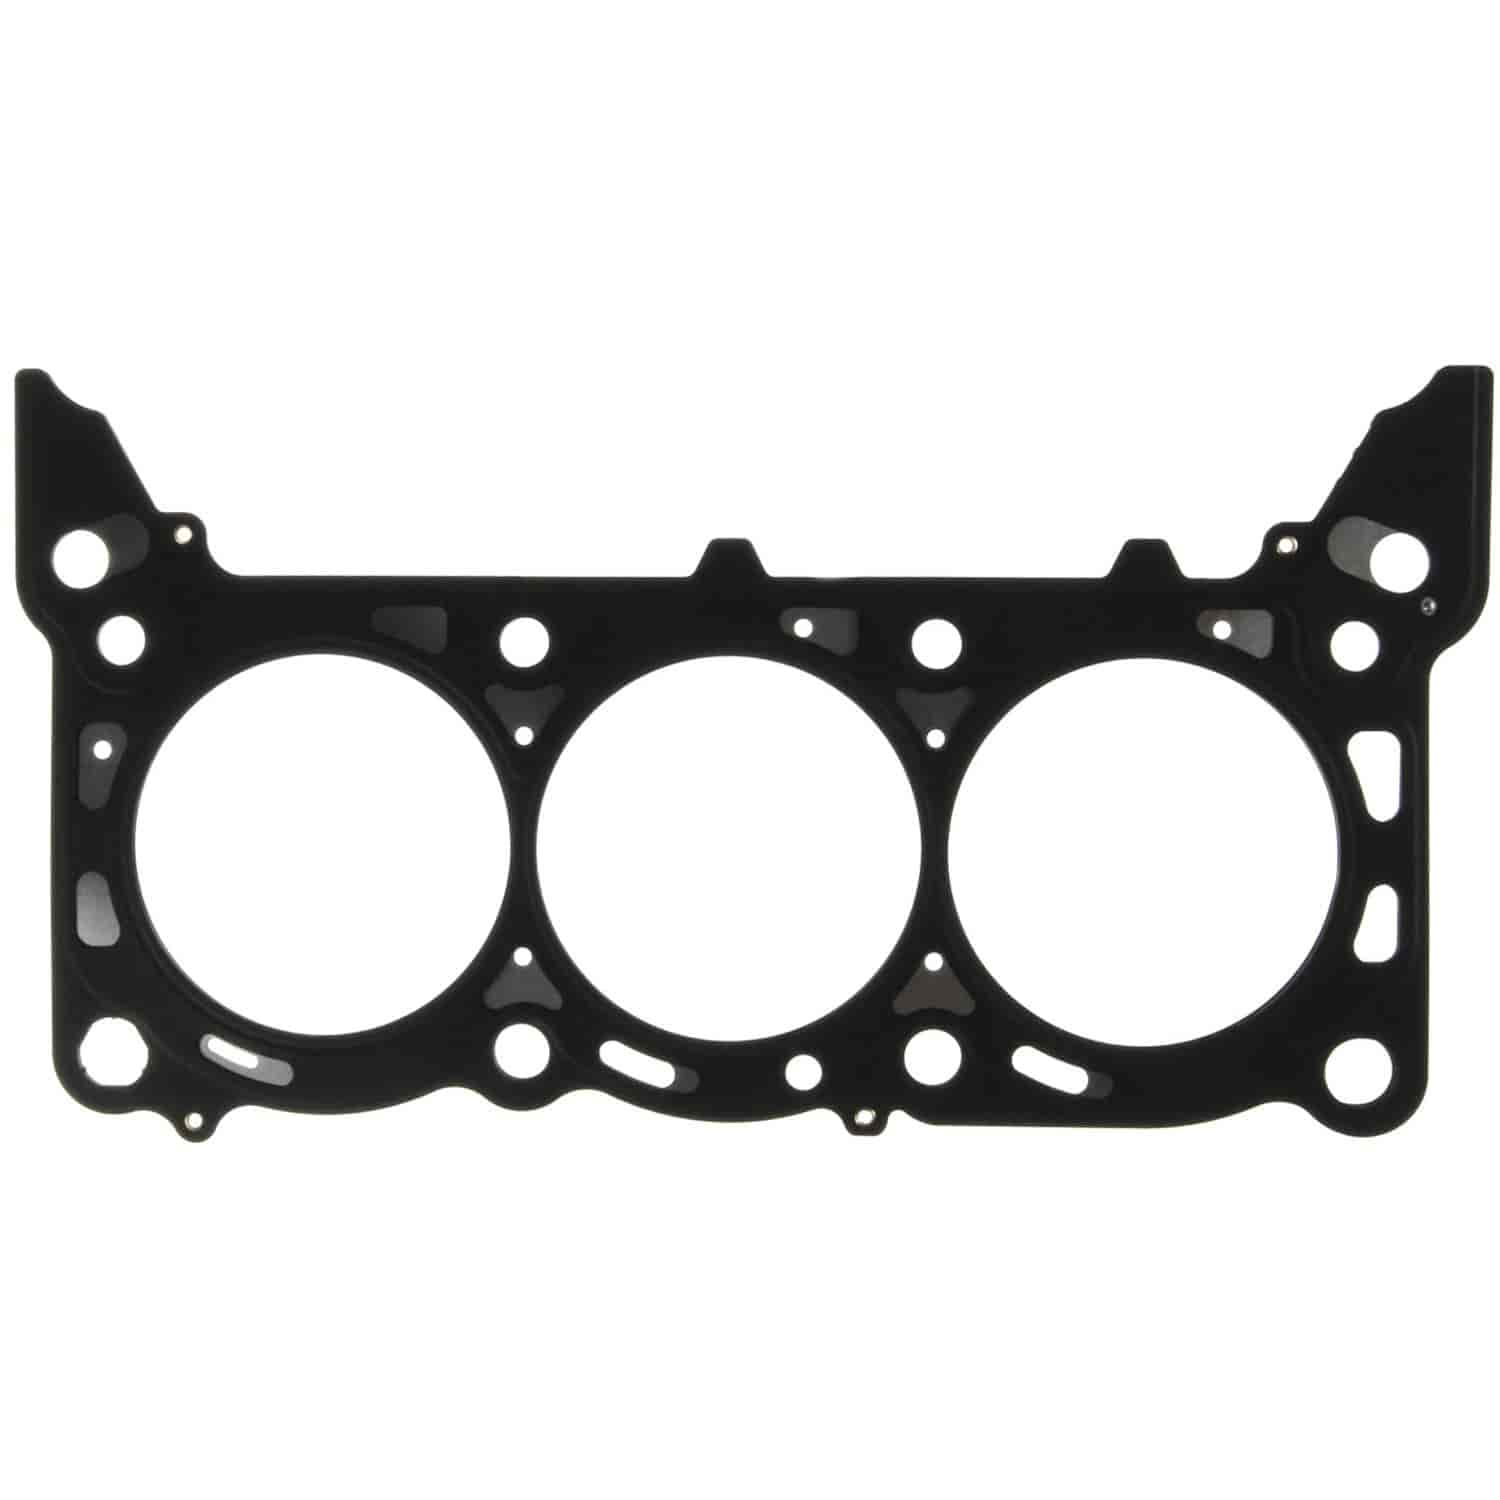 Clevite MAHLE 54175: Cylinder Head Gasket Right Ford